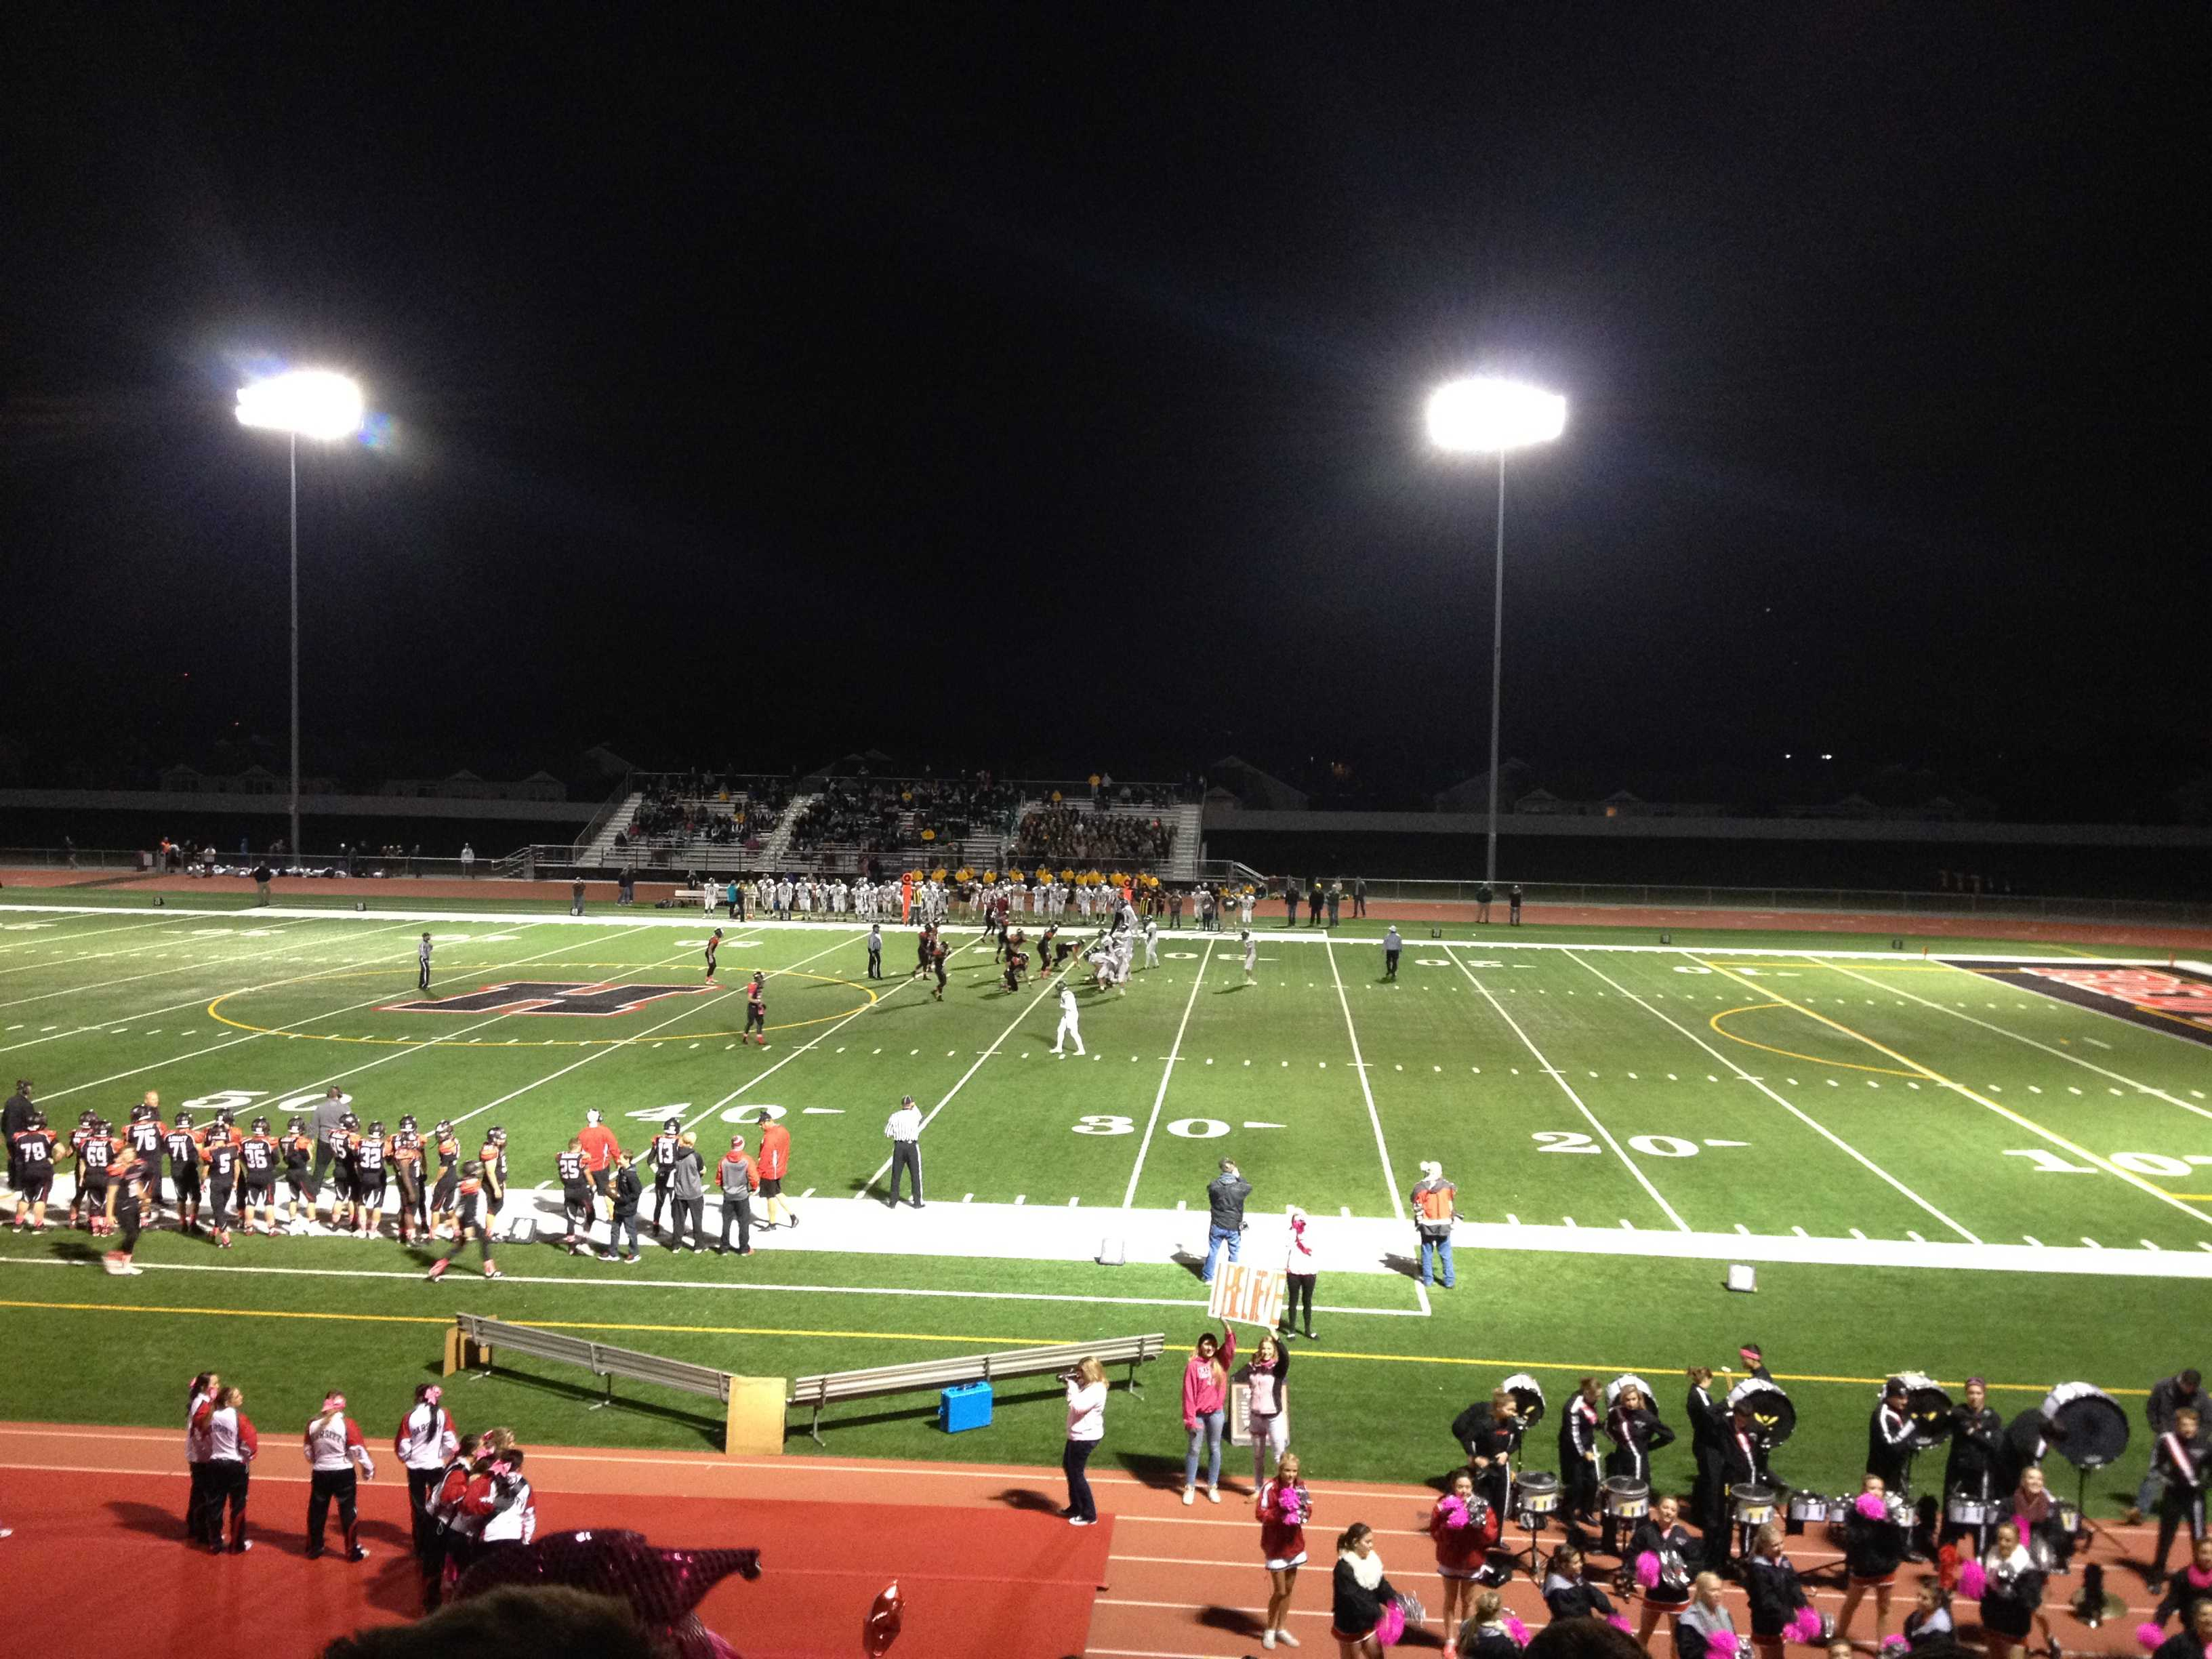 The Huntley High School Red Raiders starting off the first quarter, against CLS.